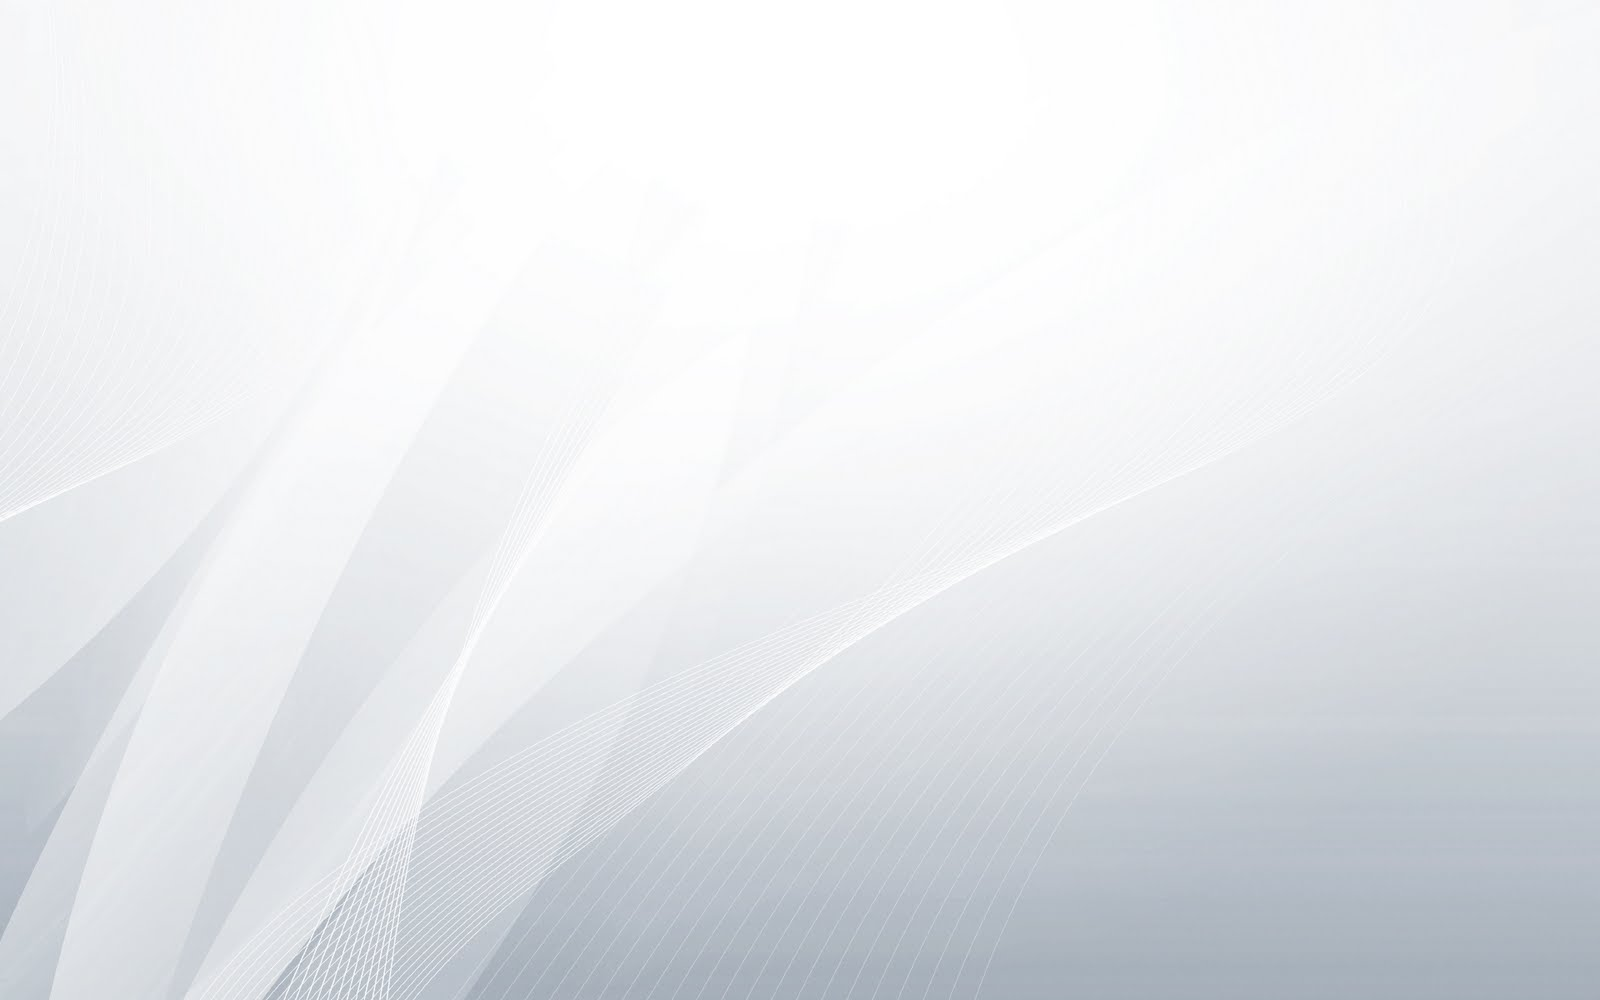 White Silver Line Waves HD Wallpapers Epic Desktop Backgrounds 1600x1000